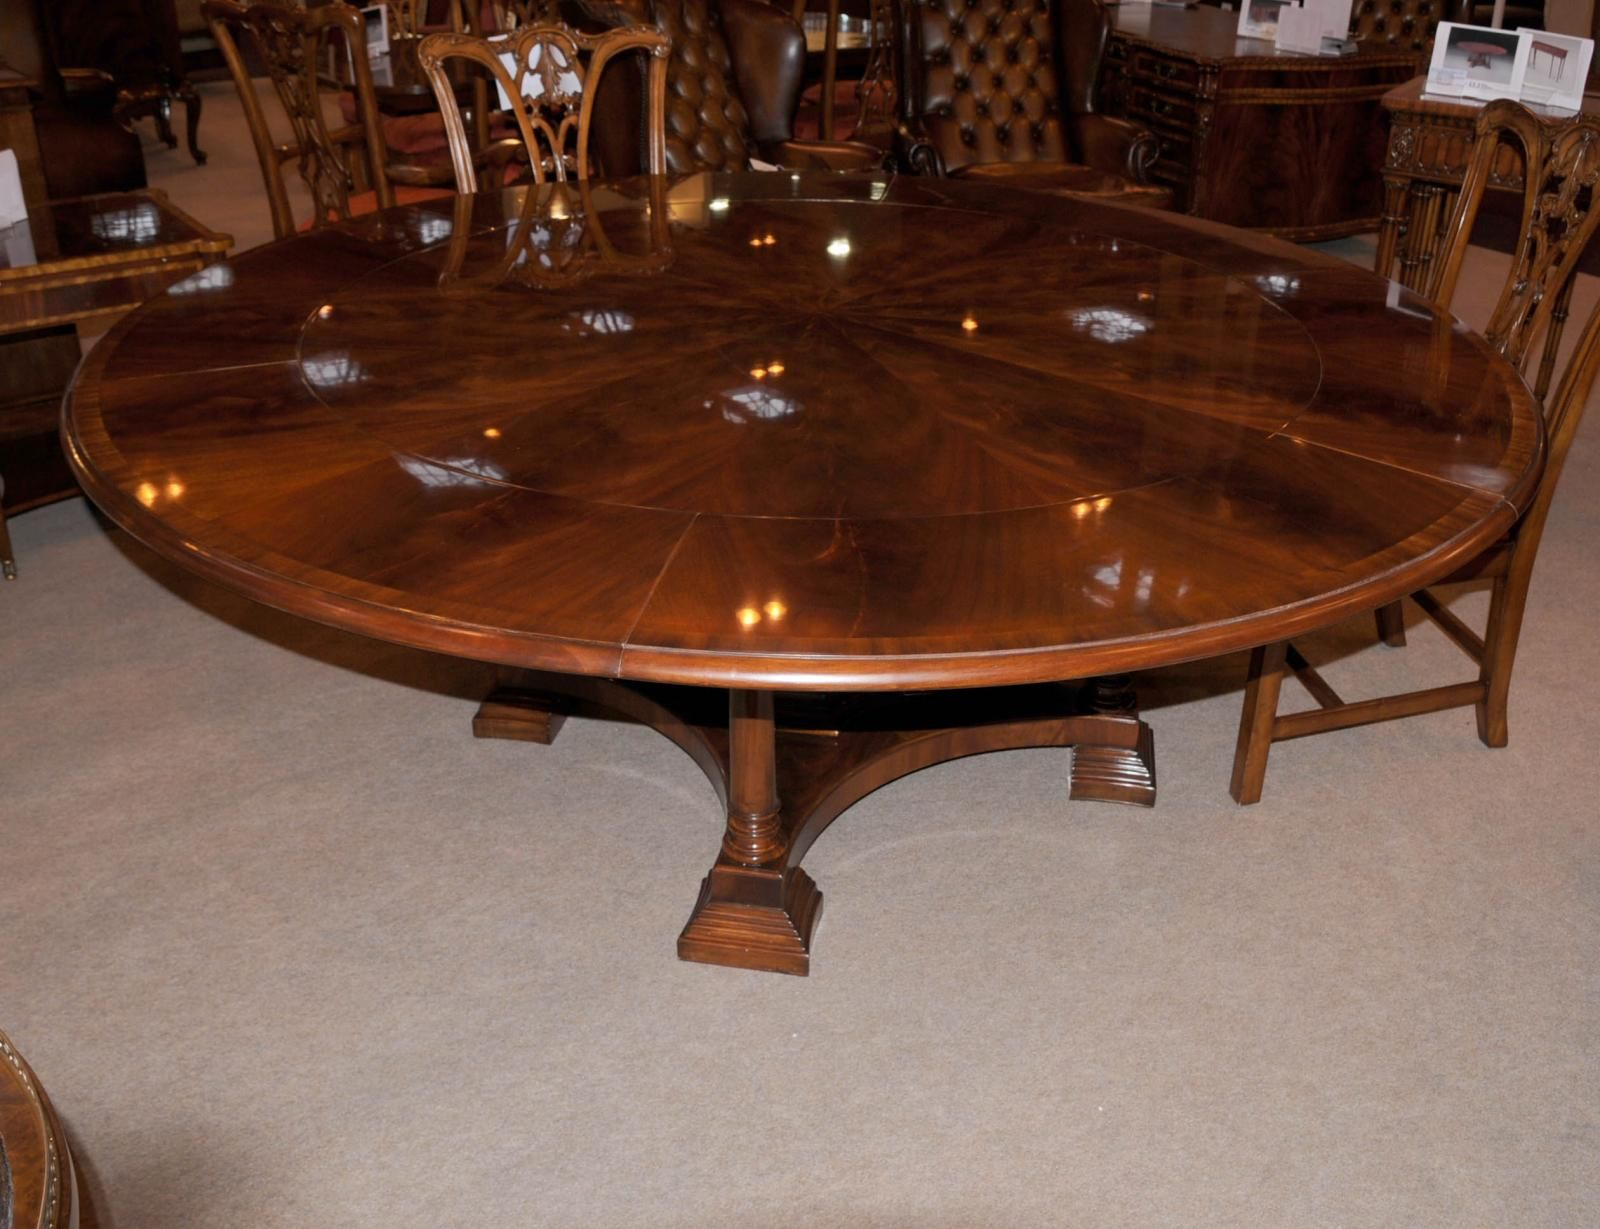 Expandable Round Dining Table expandable round dining table ideas - http://tables.backtobosnia